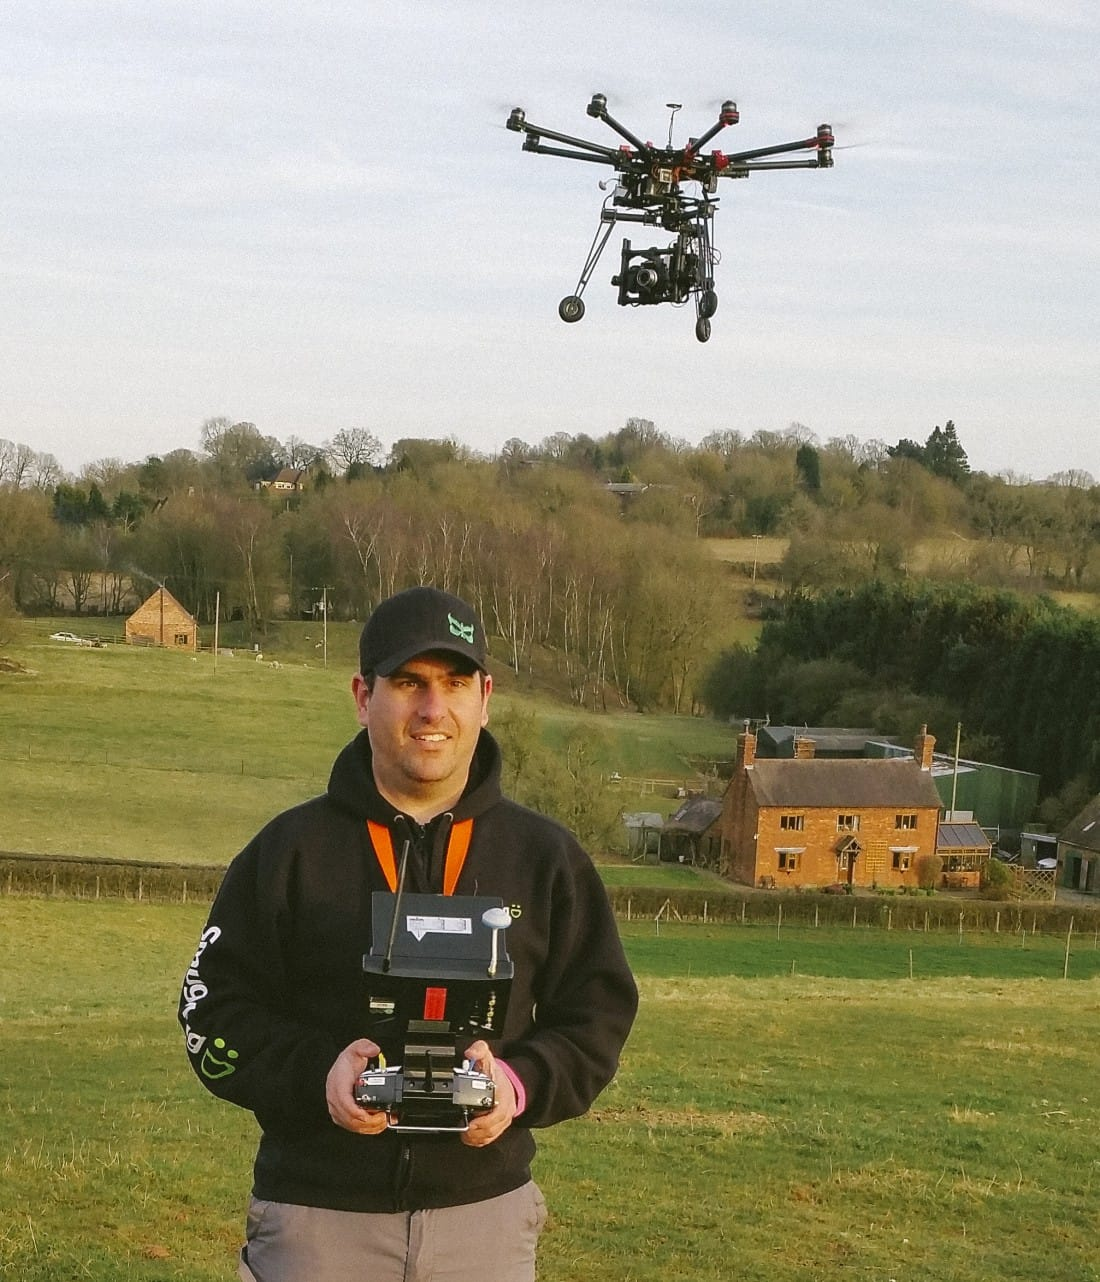 Chris Davies flying his DJI S1000, MoVi M5